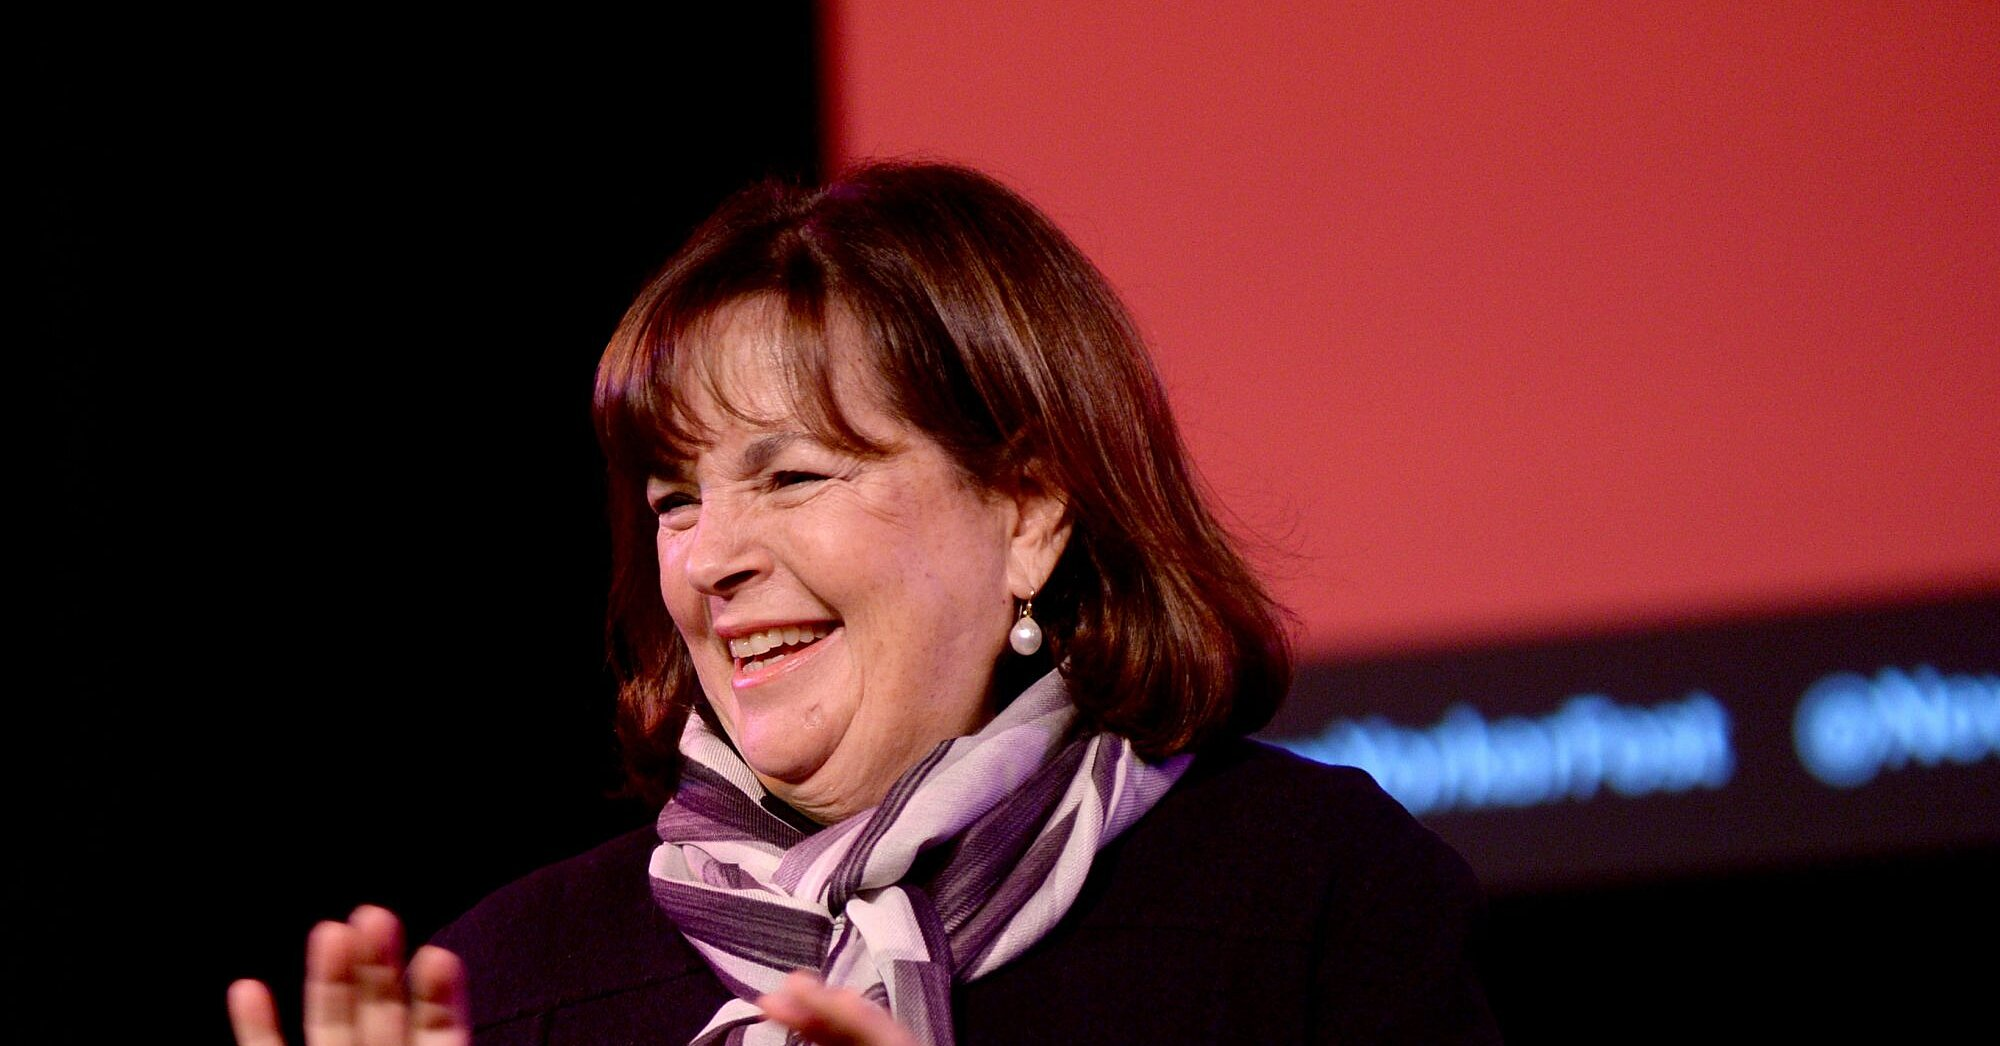 Ina Garten's Favorite Comfort Food Isn't What You'd Expect (and It's Actually Really Good for You)